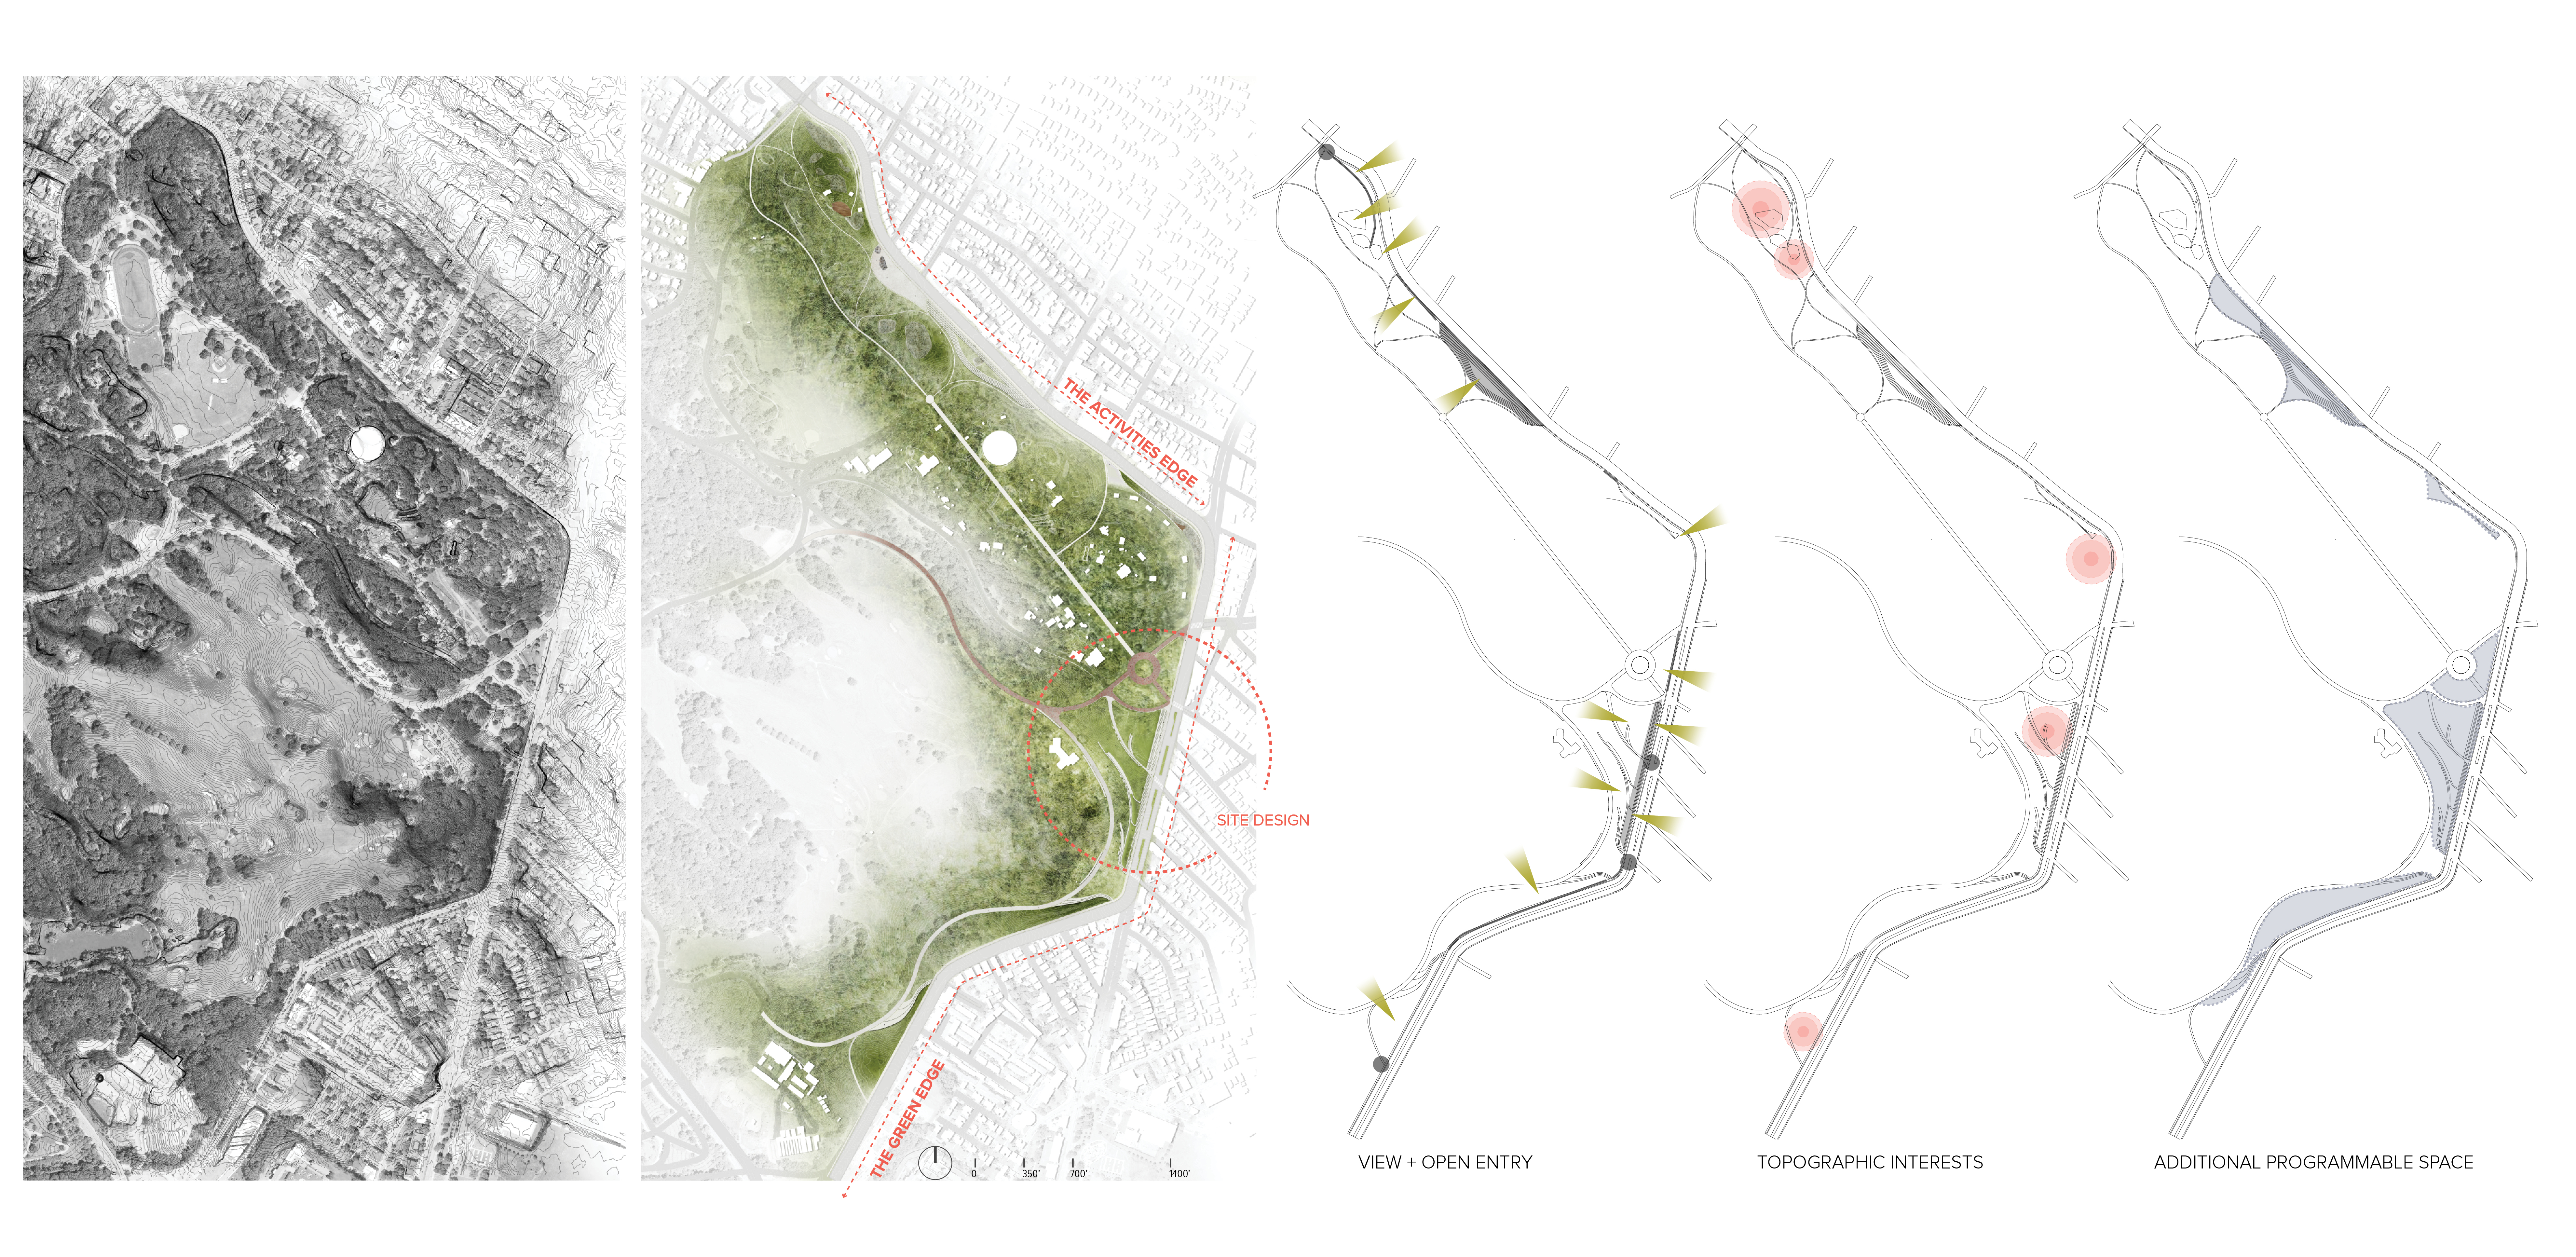 Focusing on the eastern edges, broad design interventions widen and enrich the entry experience to enhance connectivity